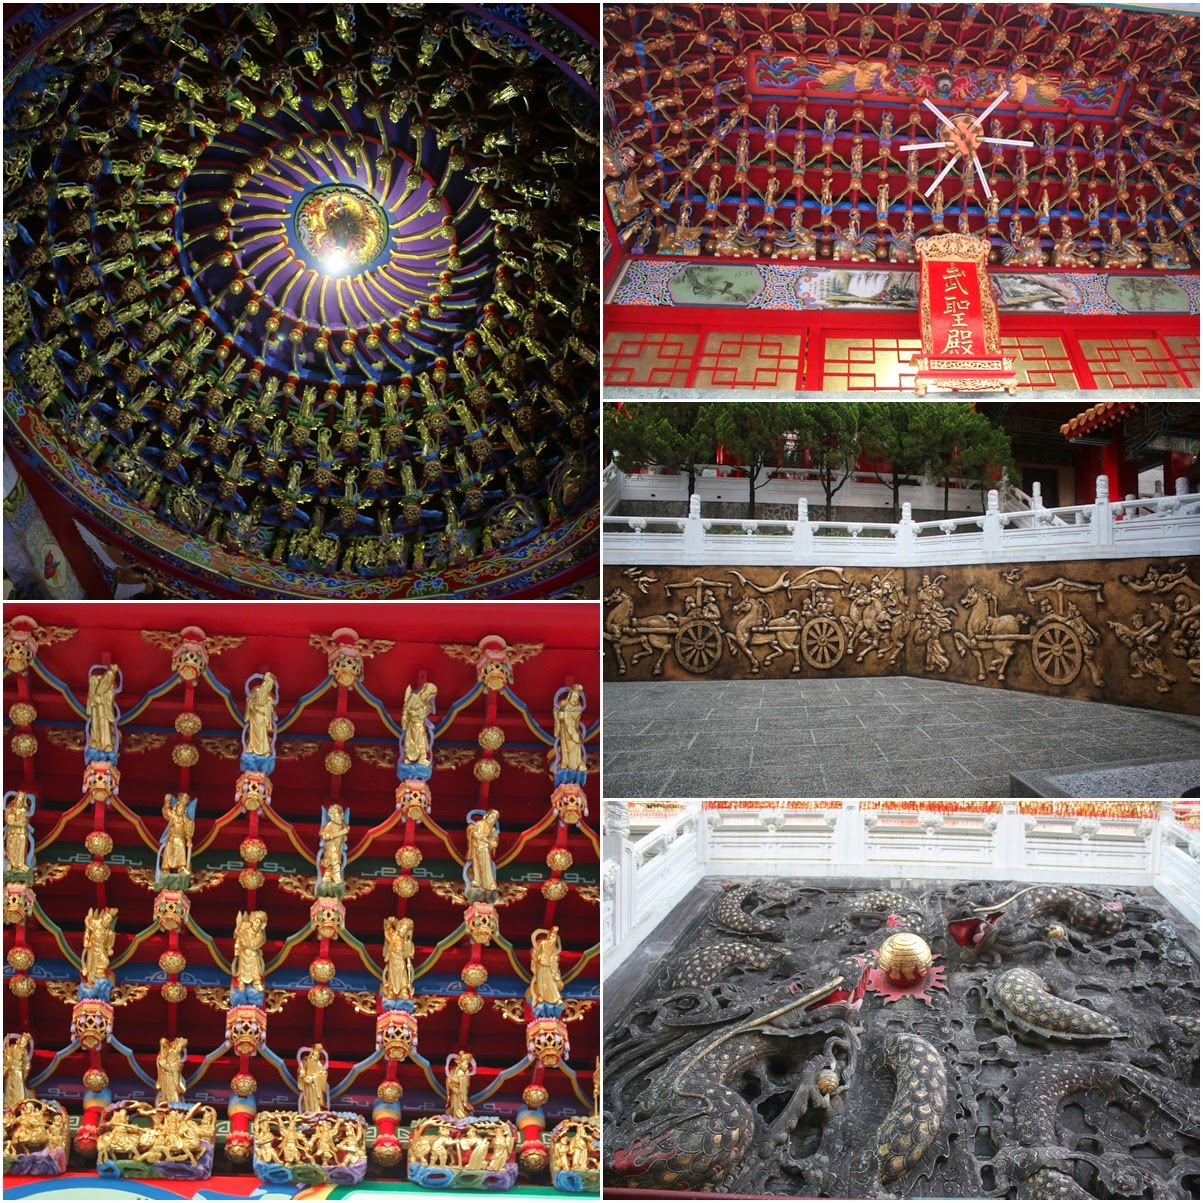 Detailed Chinese design with Gods statues in gold including walls sculptures of dragons and horses at Wenwu Temple in Puli County of Taiwan